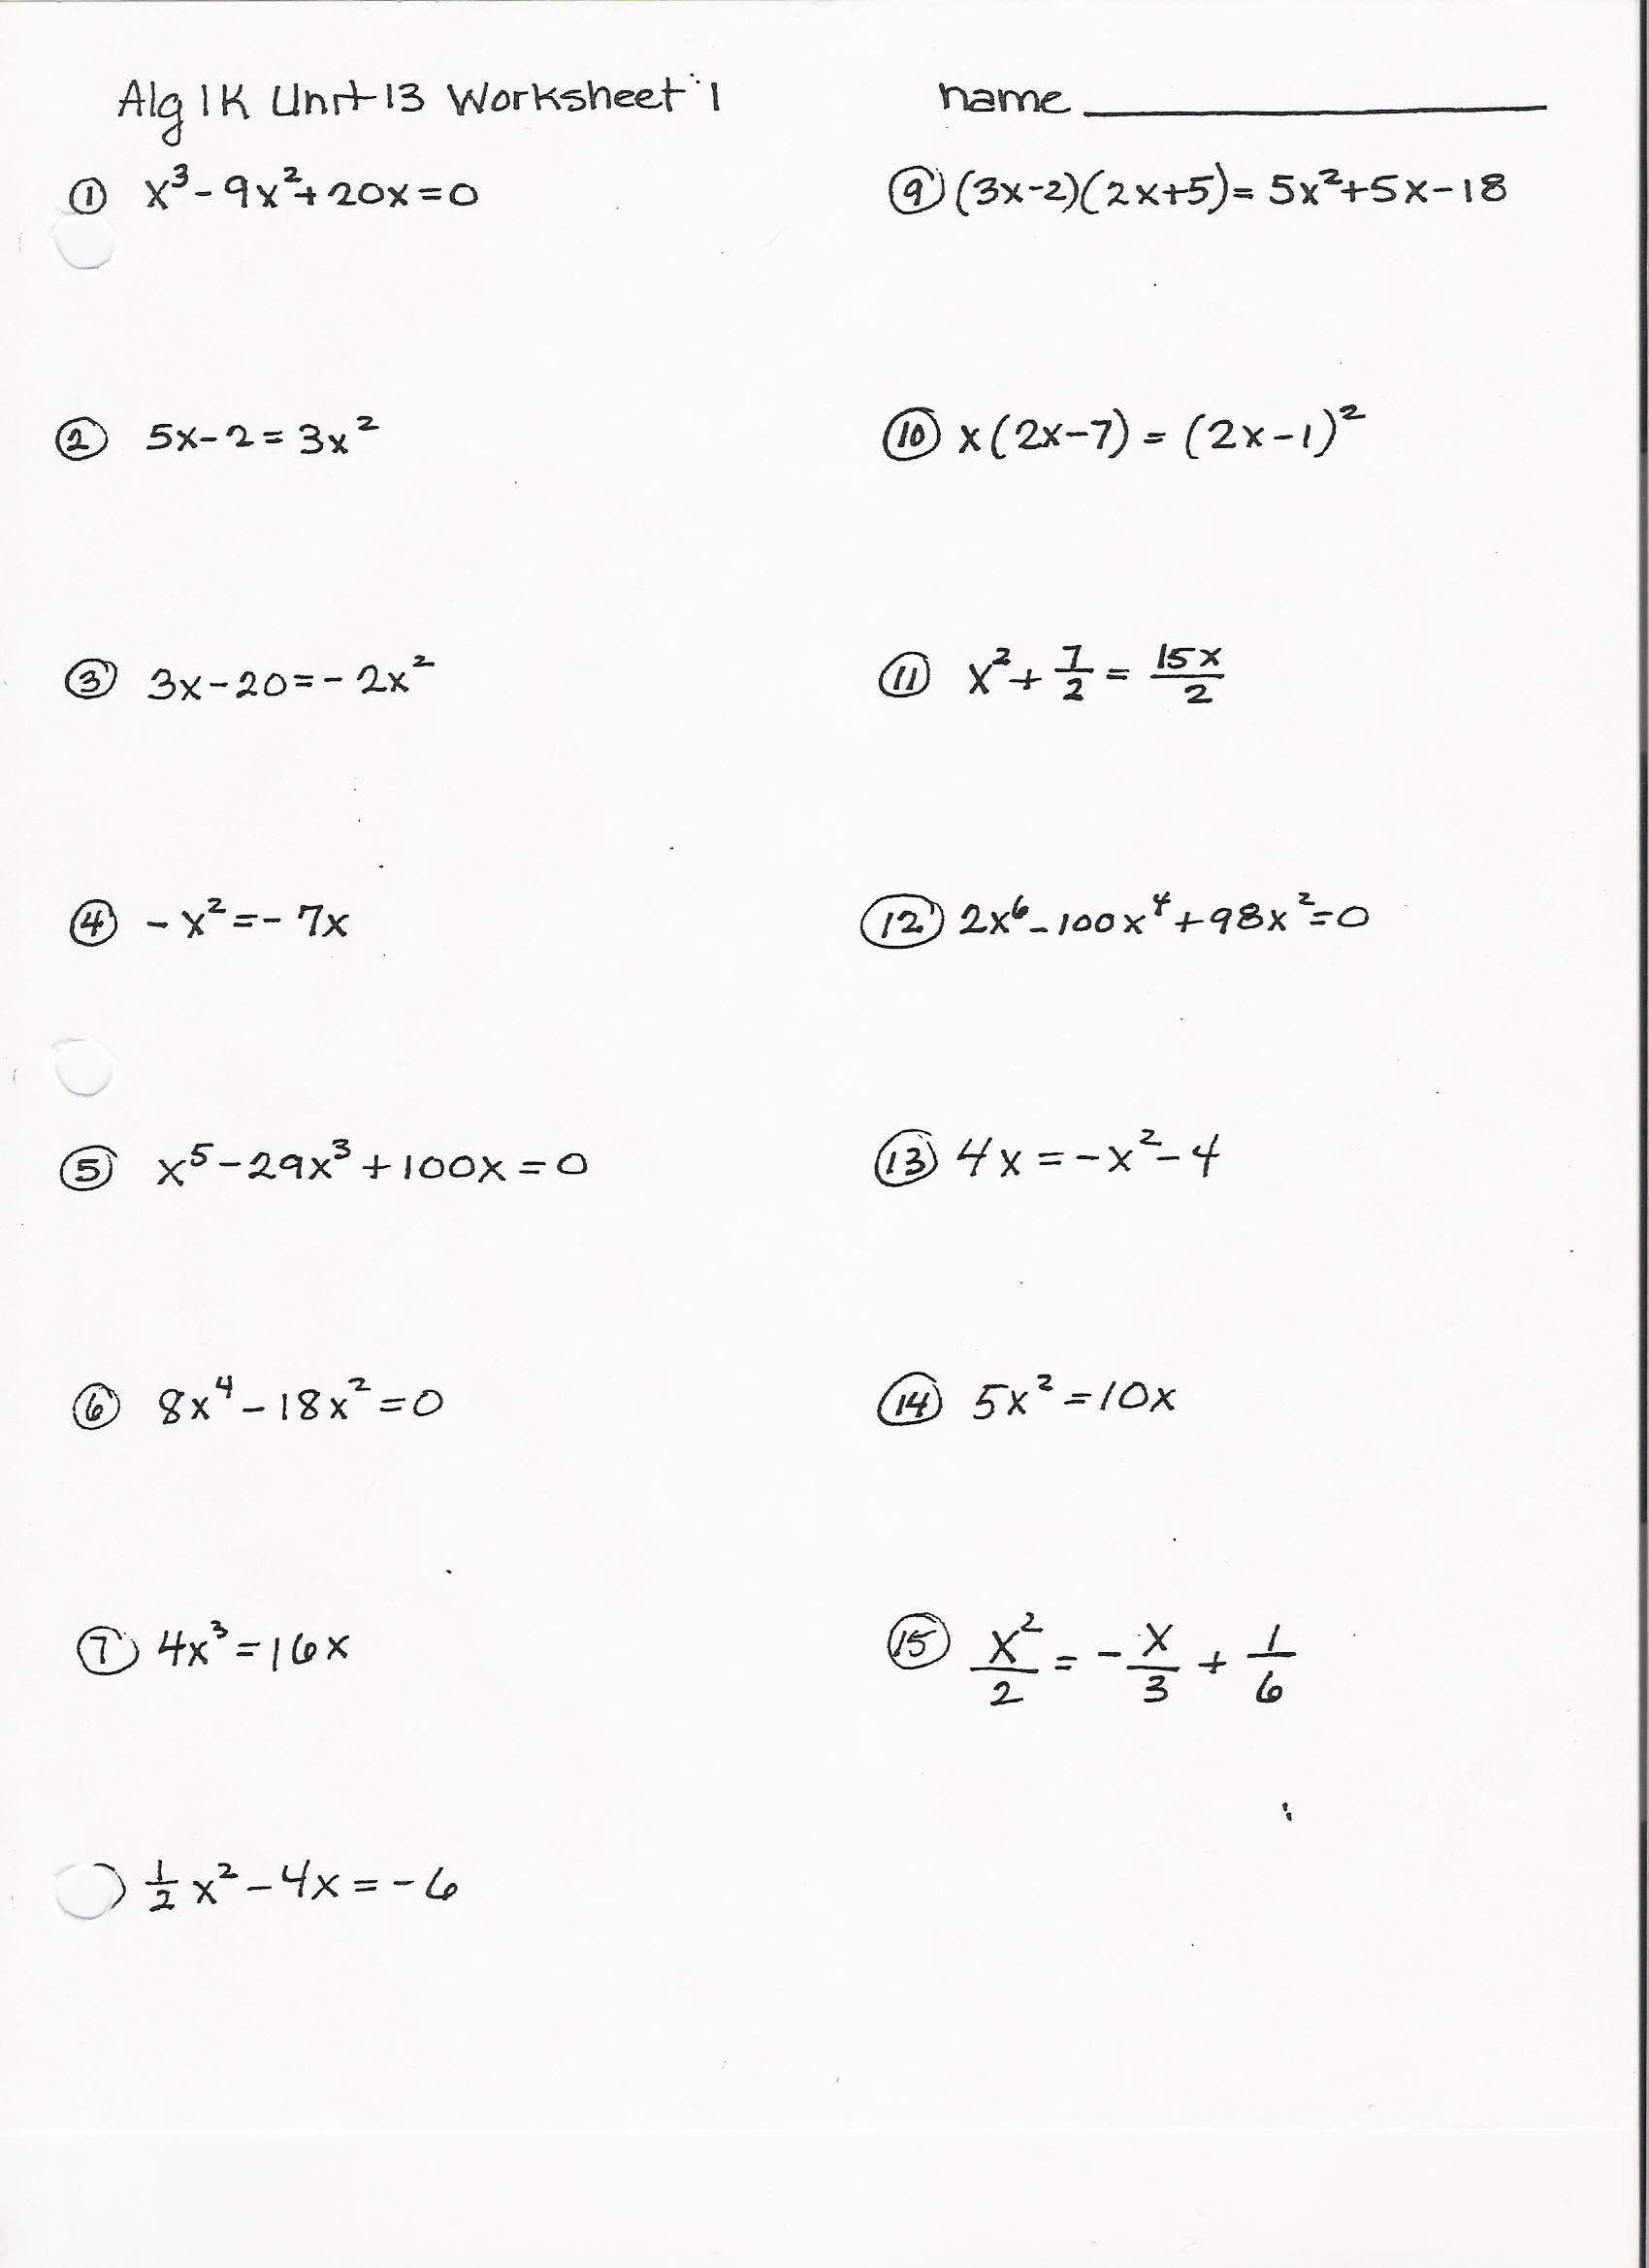 12 Best Images Of Dividing Polynomials Worksheet With Work